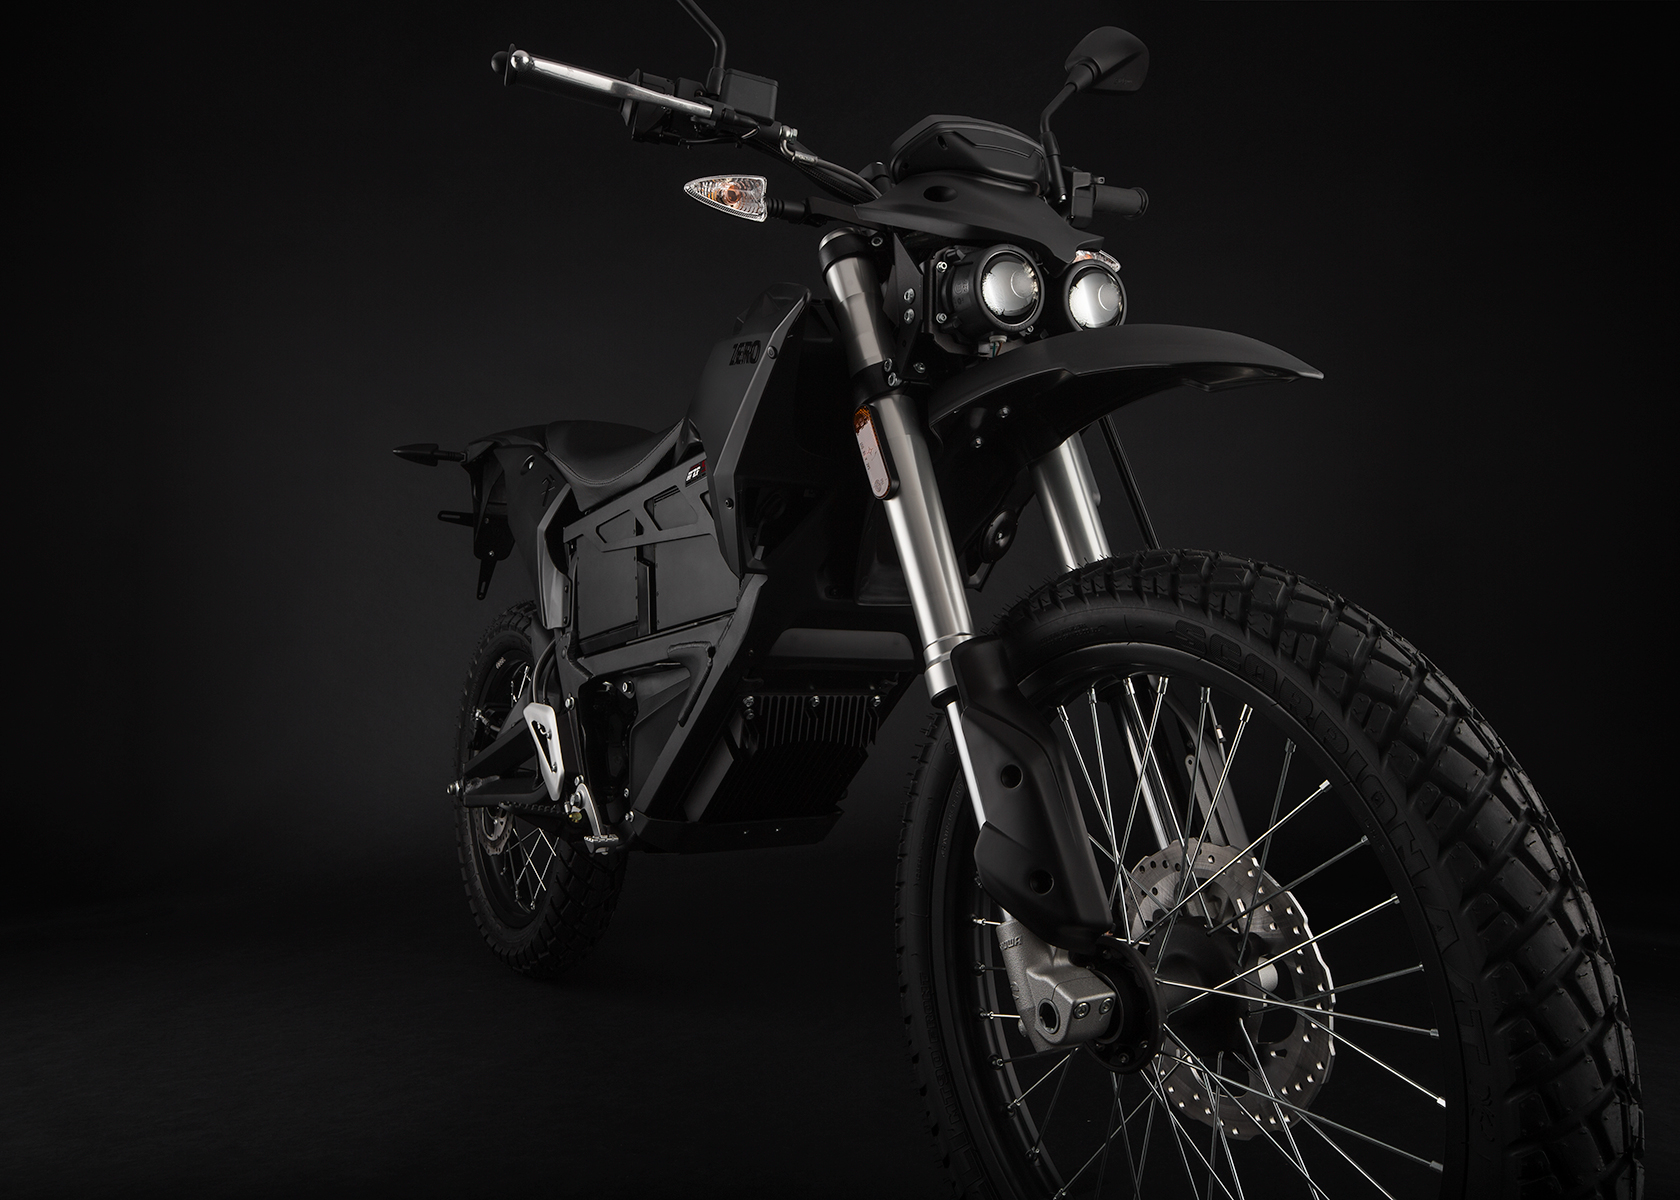 2015 Zero FX Electric Motorcycle: Front Fork